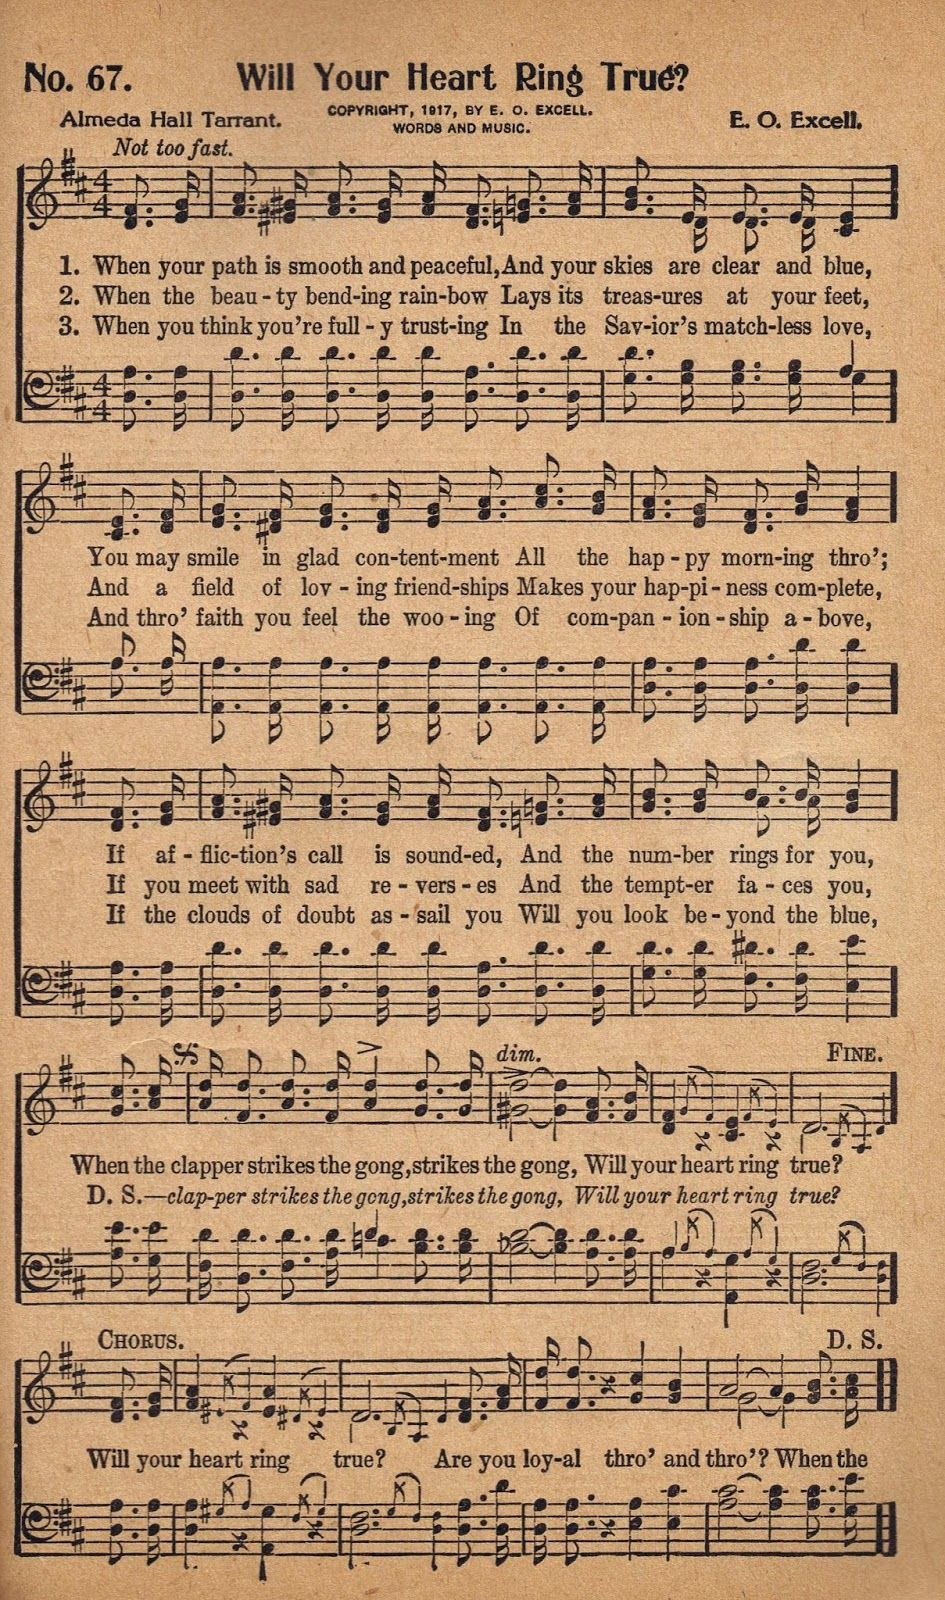 picture about Printable Hymns Sheet Music named Totally free Printable Antique Songs Hymn Guide Webpage Will Your